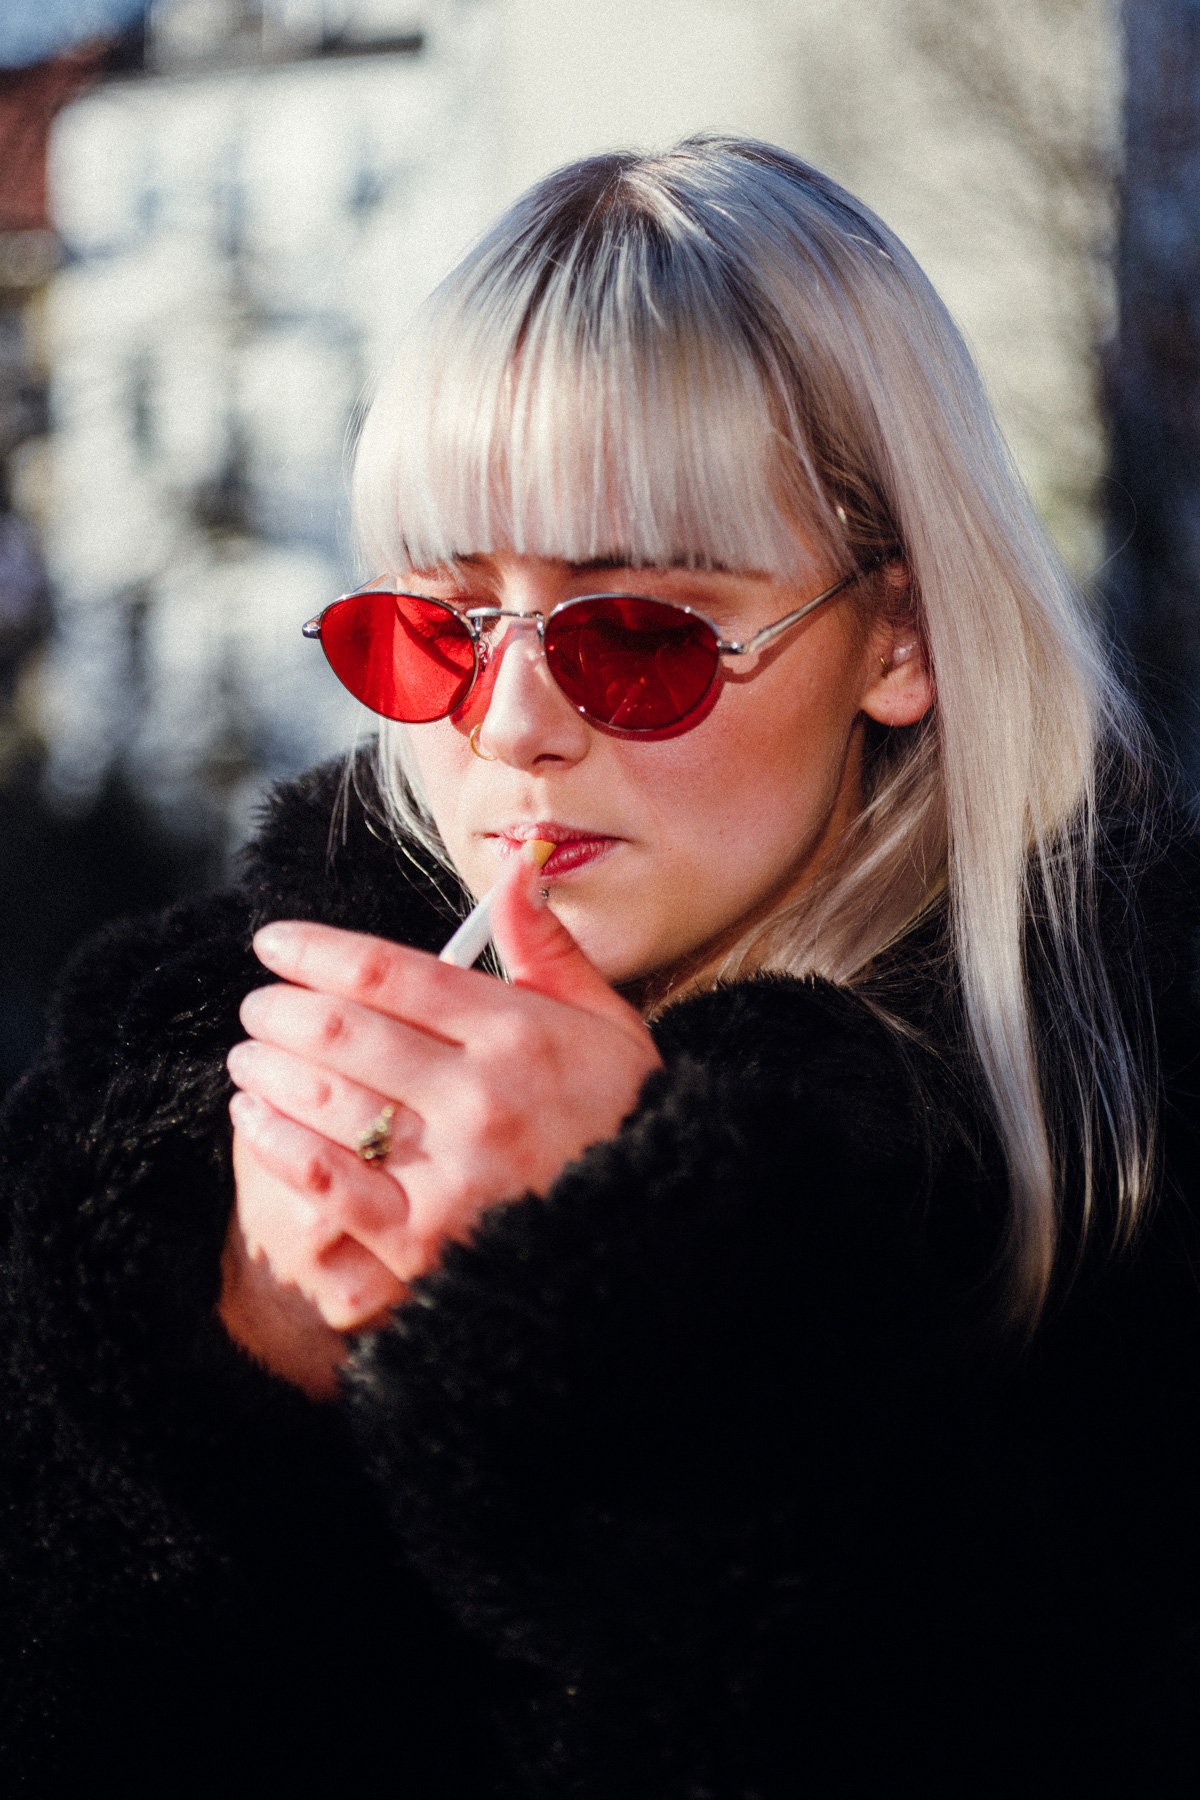 Liz' red glasses - & a cigarette on the balcony